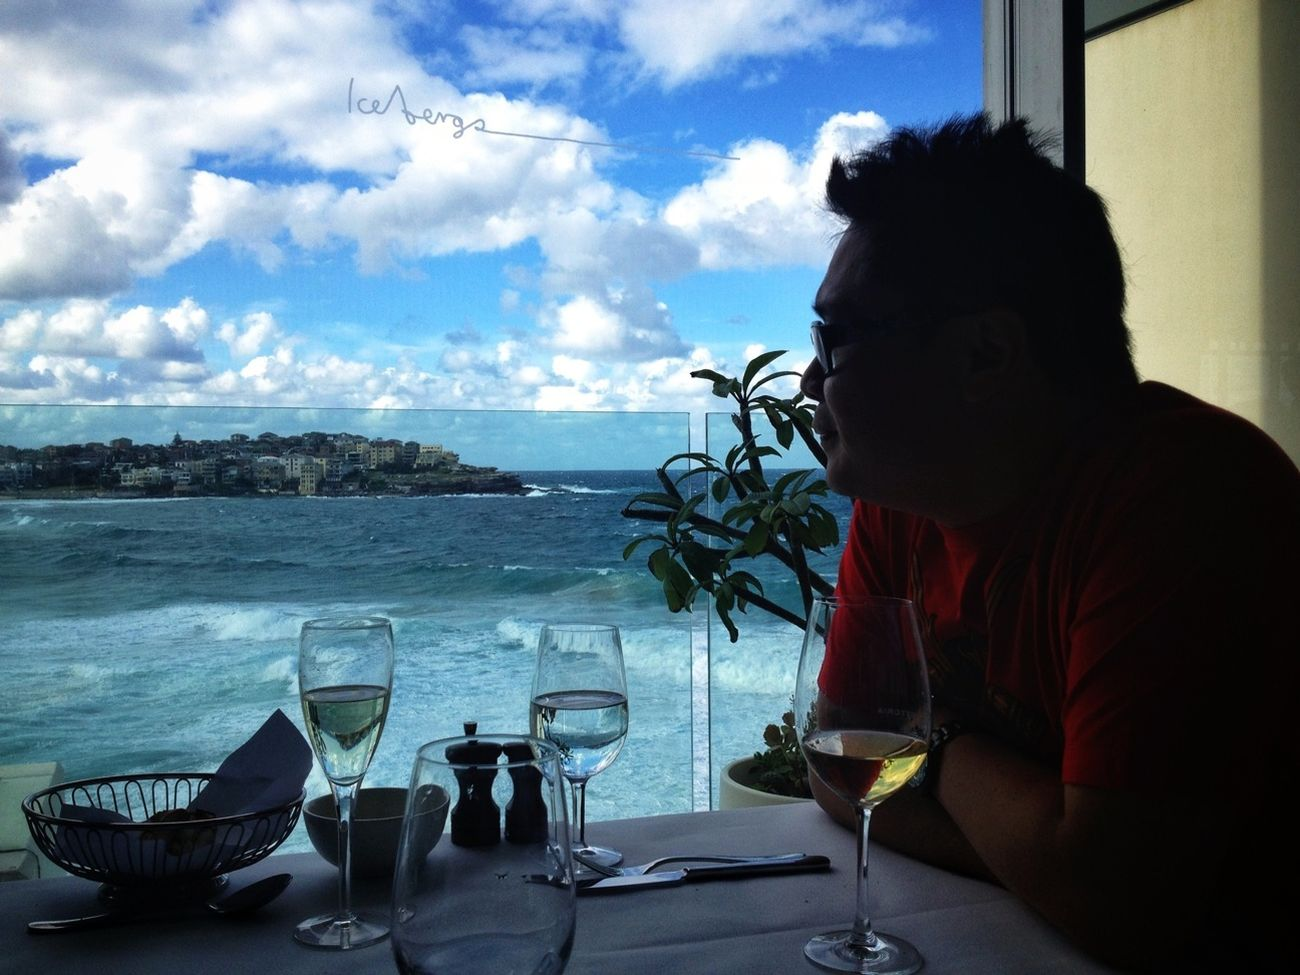 Having a slow seafood lunch at Icebergs, overlooking Bondi. #Sydney